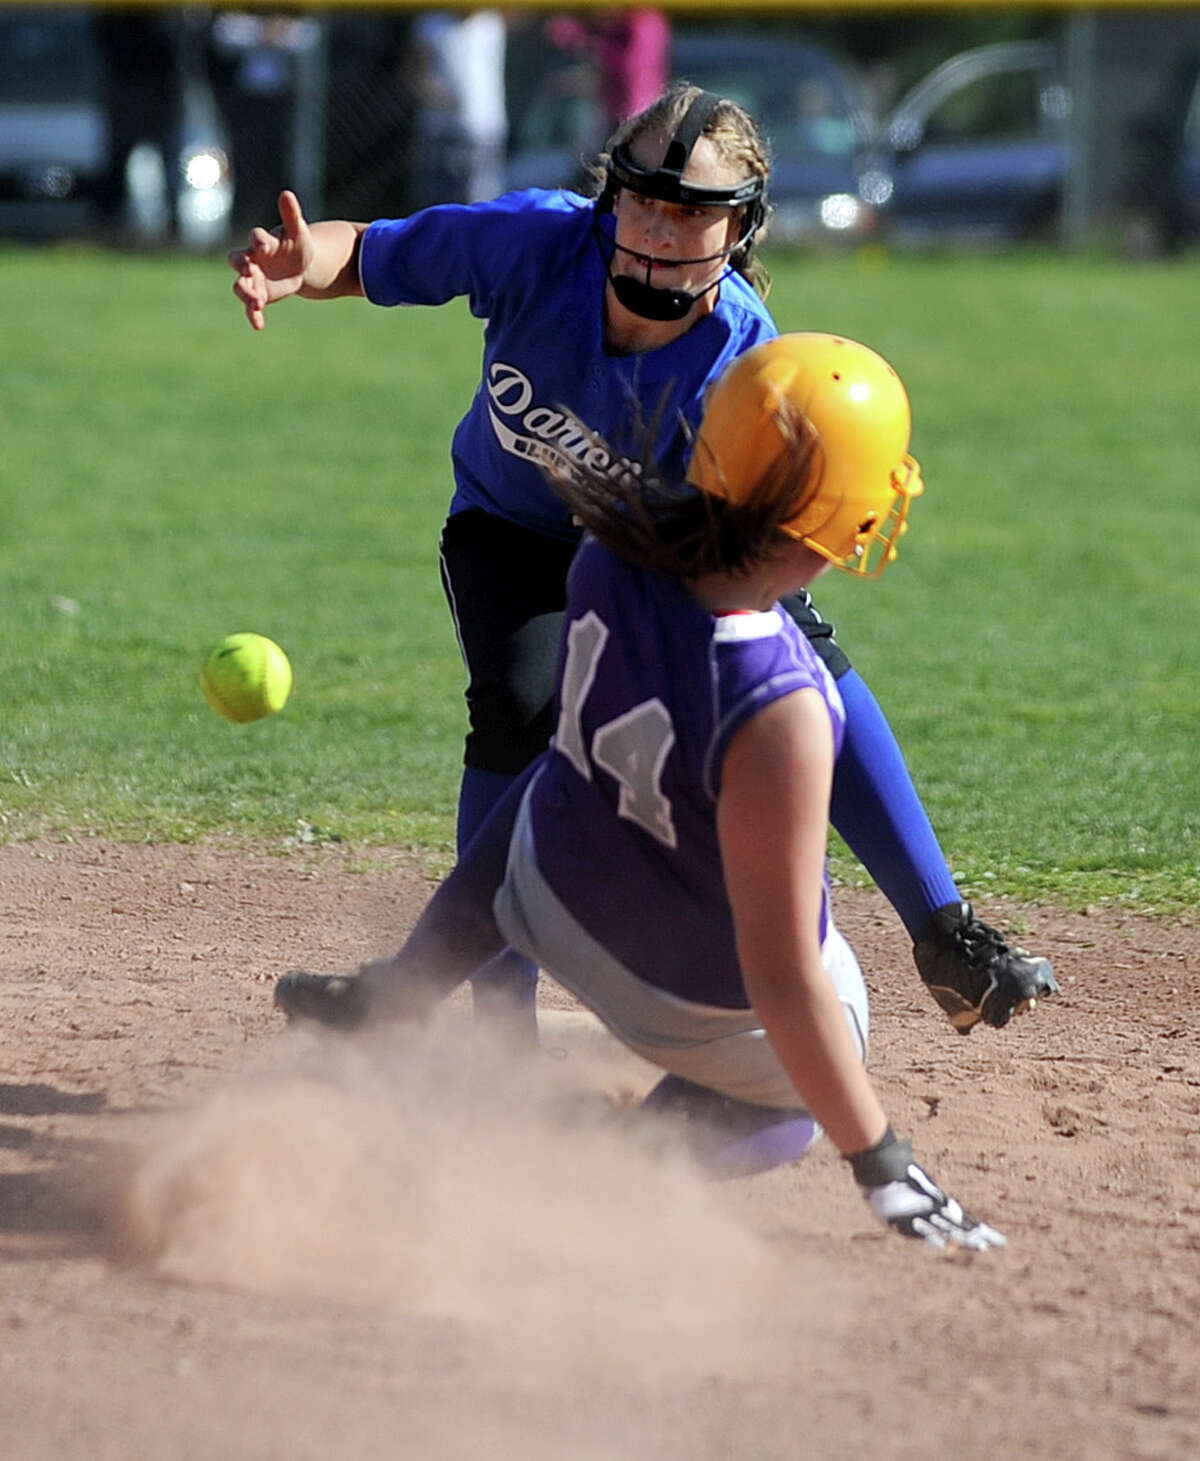 Darien's Erika Osherow reaches for the ball as Westhill's Cassandra Kish slides into second base during Friday's softball game at Westhill High School in Stamford on April 13, 2012.